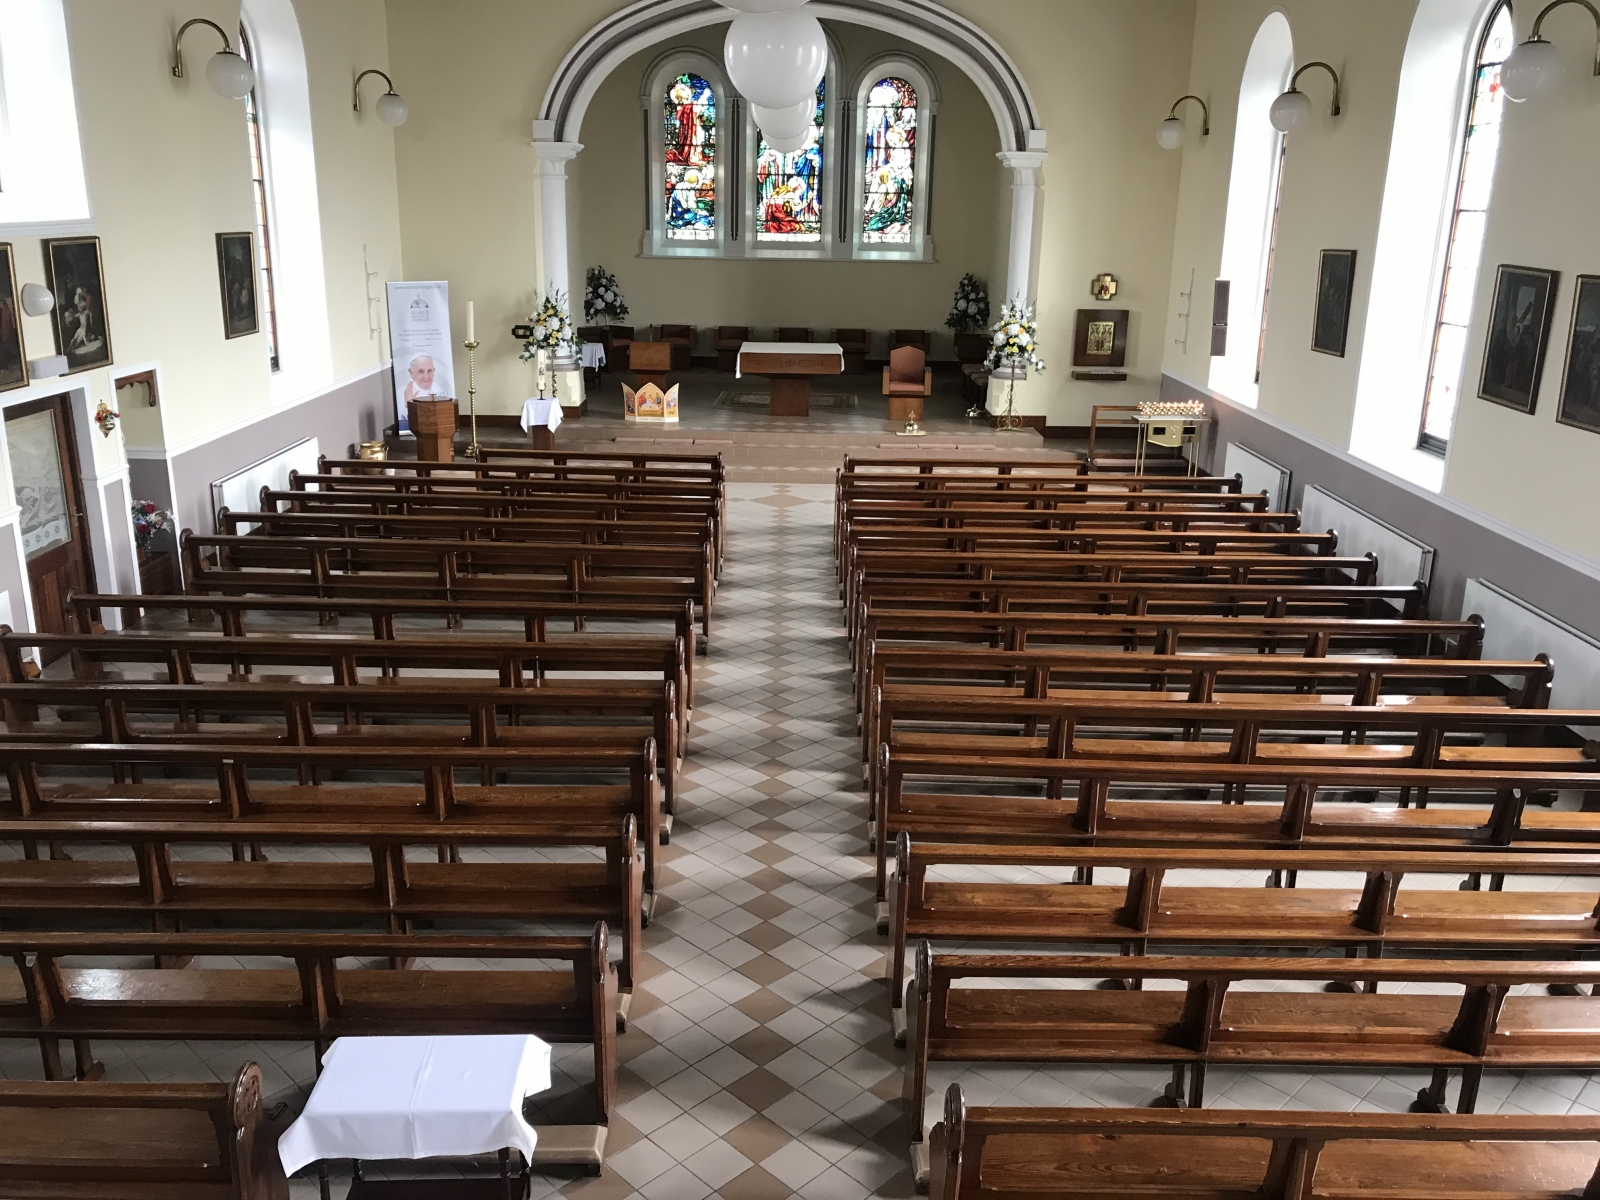 St Joseph's Church Ballyshannon 6